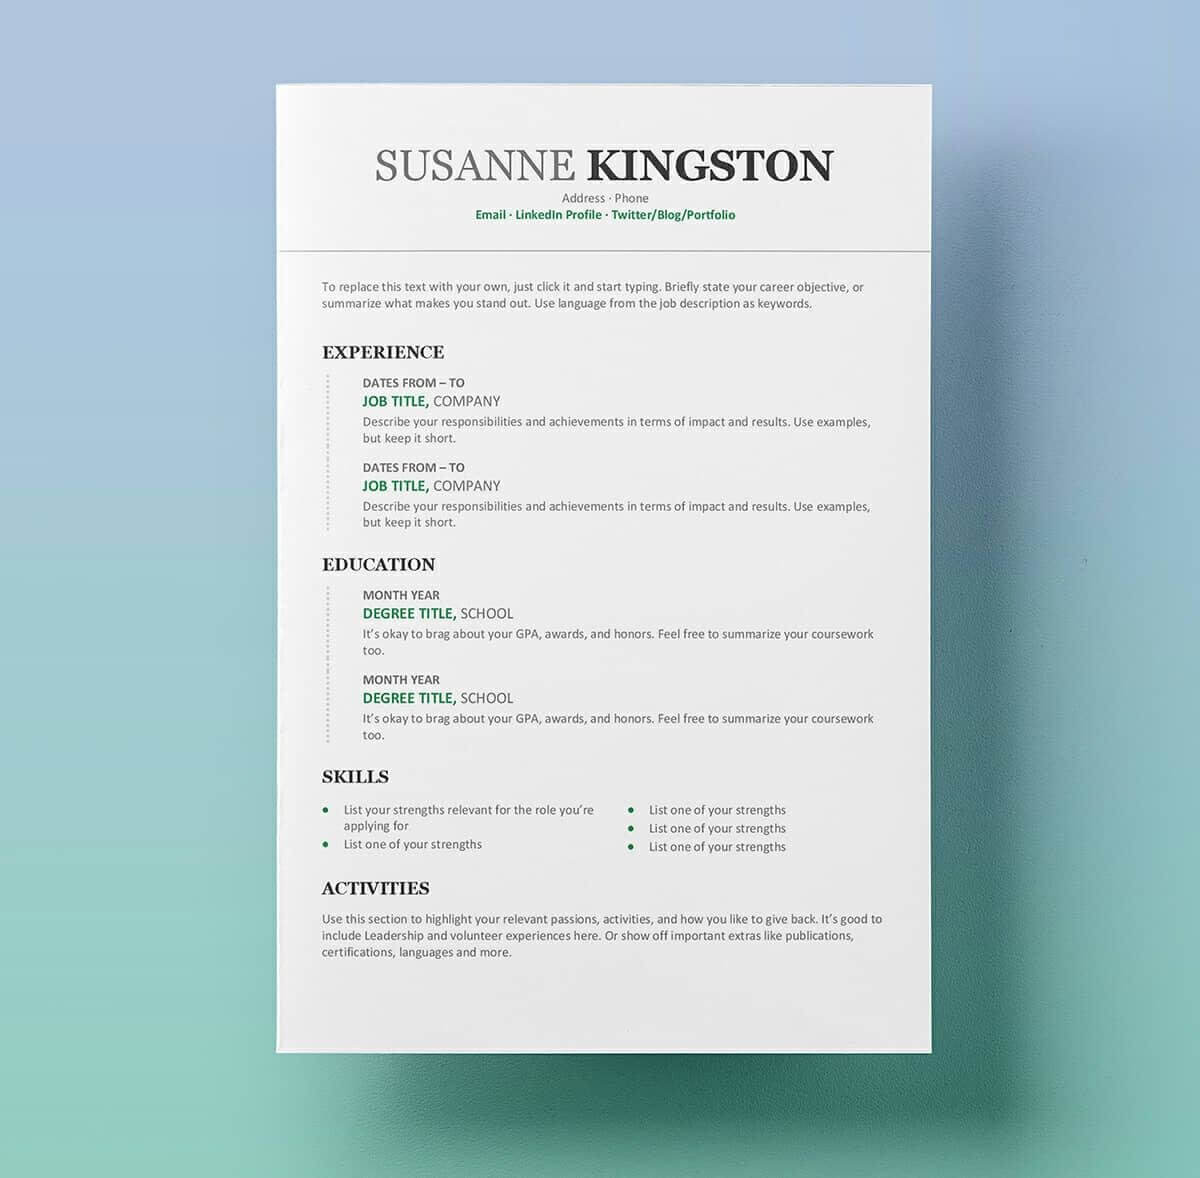 15+ Resume Templates For Word (Free To Download) throughout How To Get A Resume Template On Word